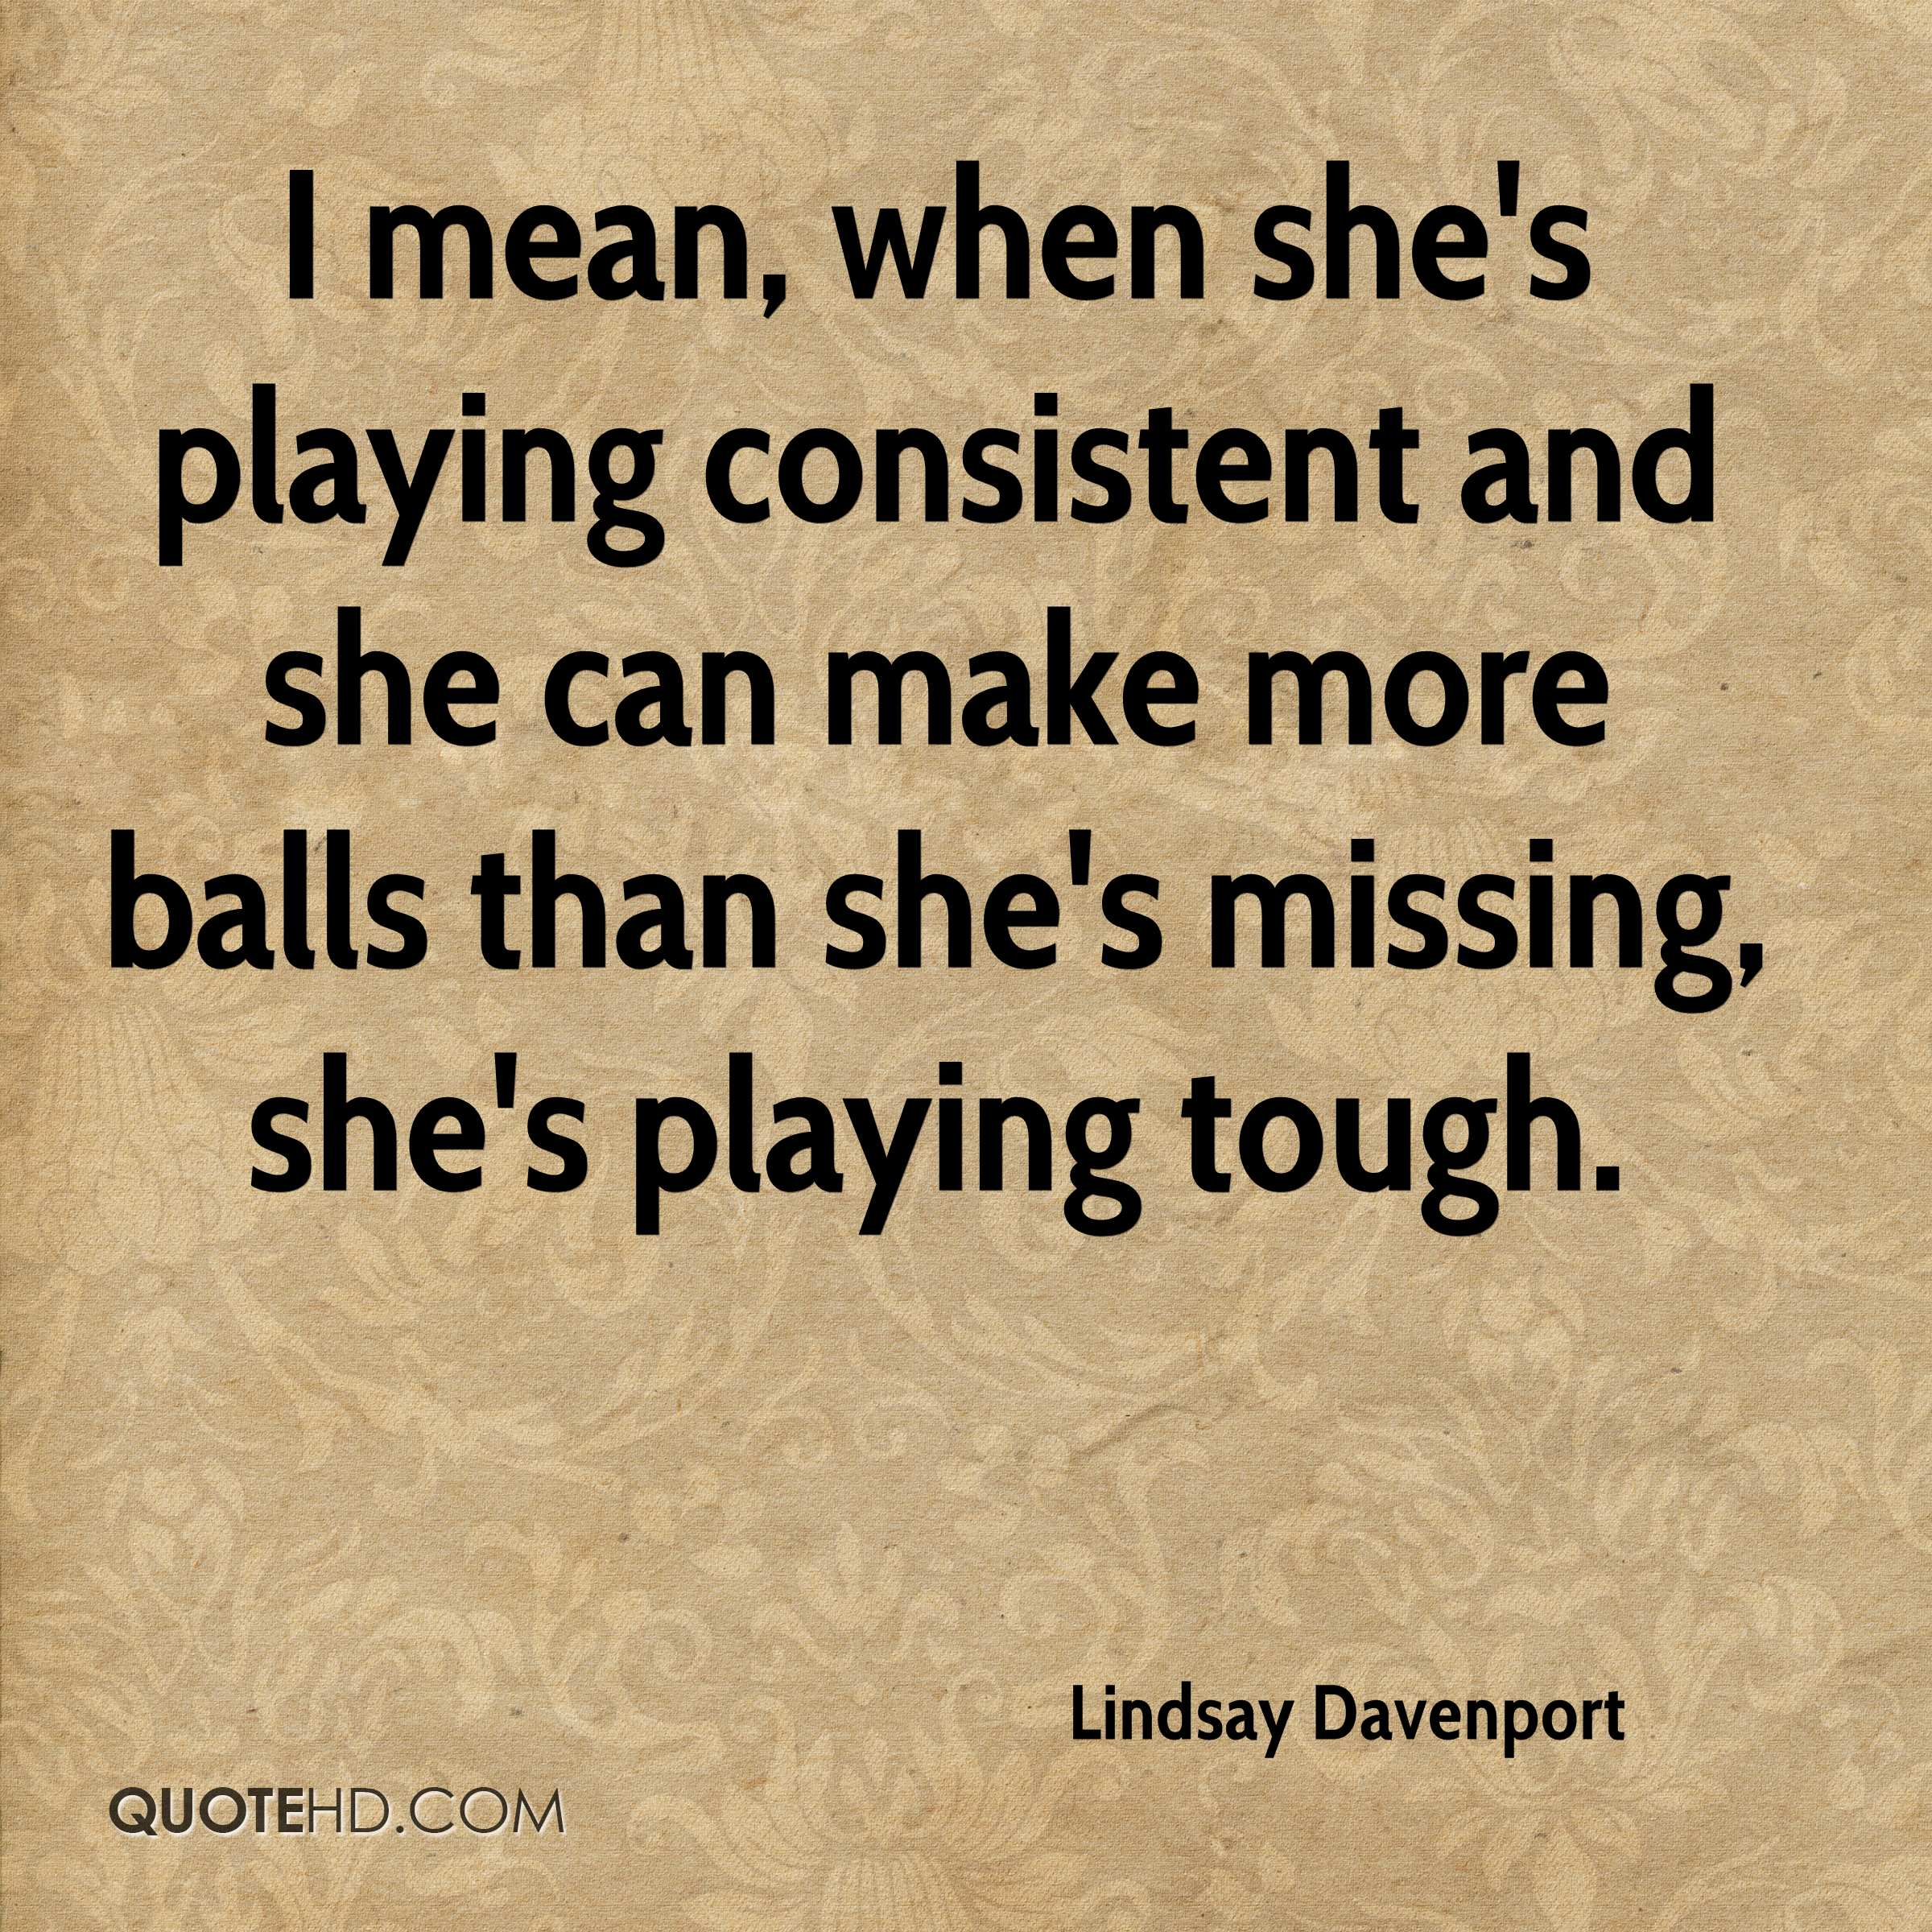 I mean, when she's playing consistent and she can make more balls than she's missing, she's playing tough.